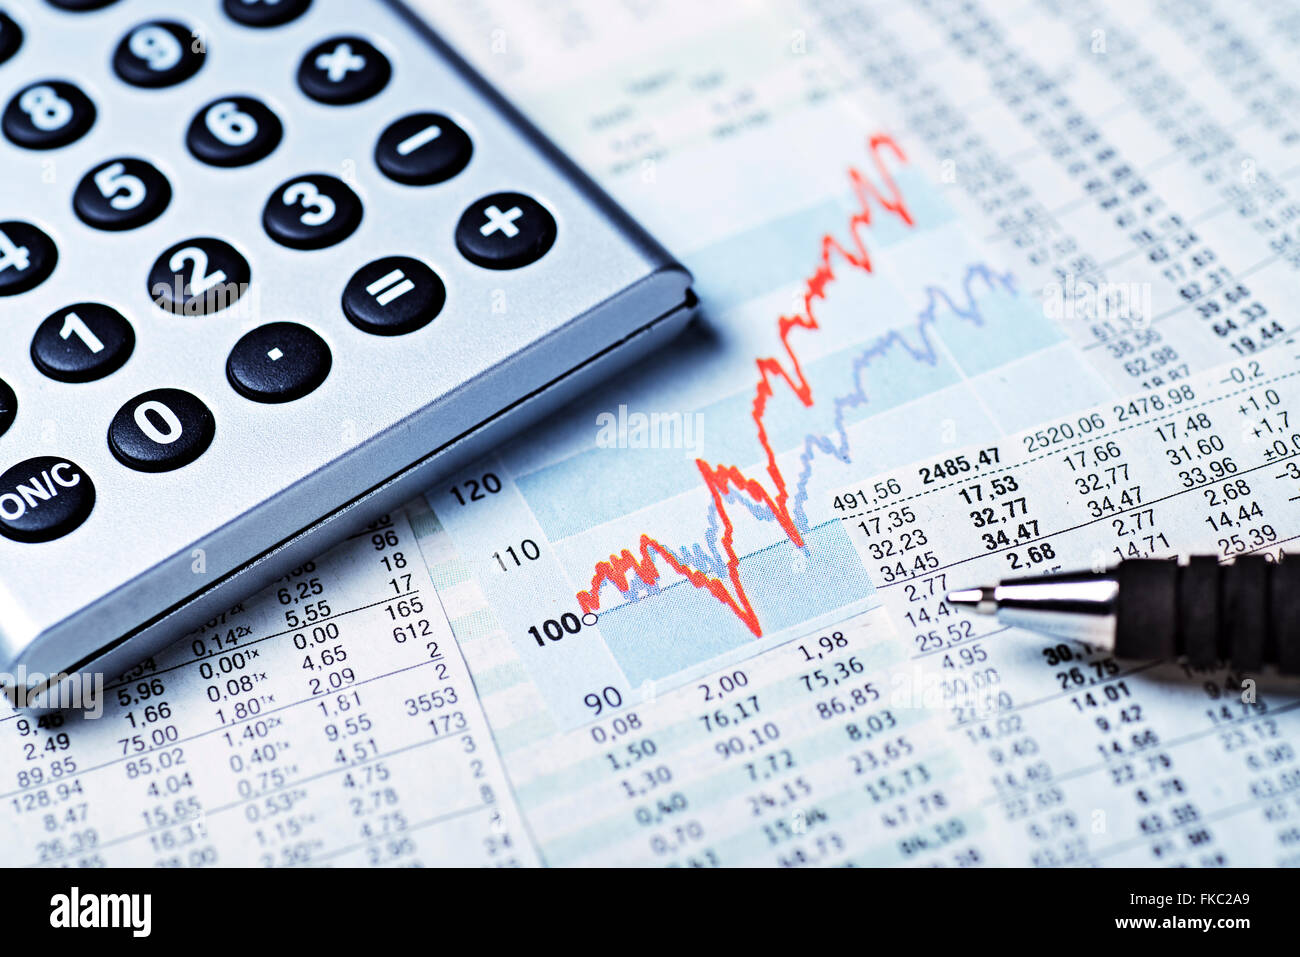 Diagram with market price, rate tables and calculators - Stock Image